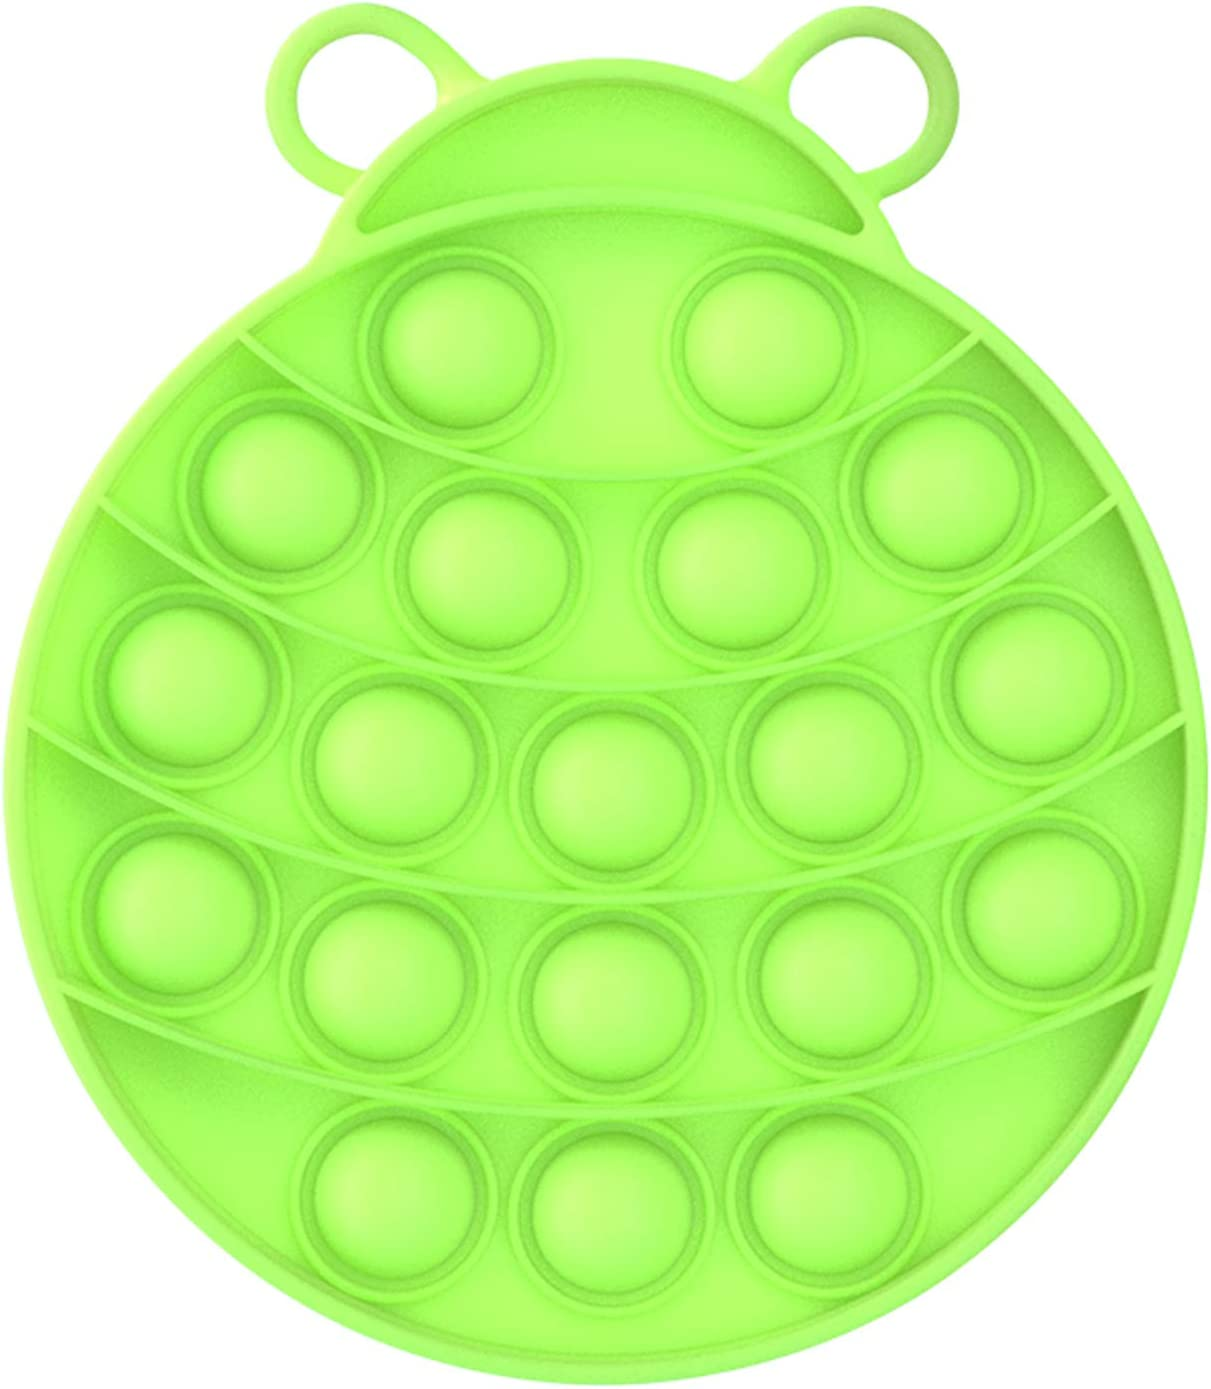 XMY Pop Bubble Sensory Fidget Toy [Food Grade Silicone] Pop Game Educational STEM Playing Board Stress Reliever Squeeze Sensory Fidget Toy for Kids Adults.(Ladybug Style-Green)